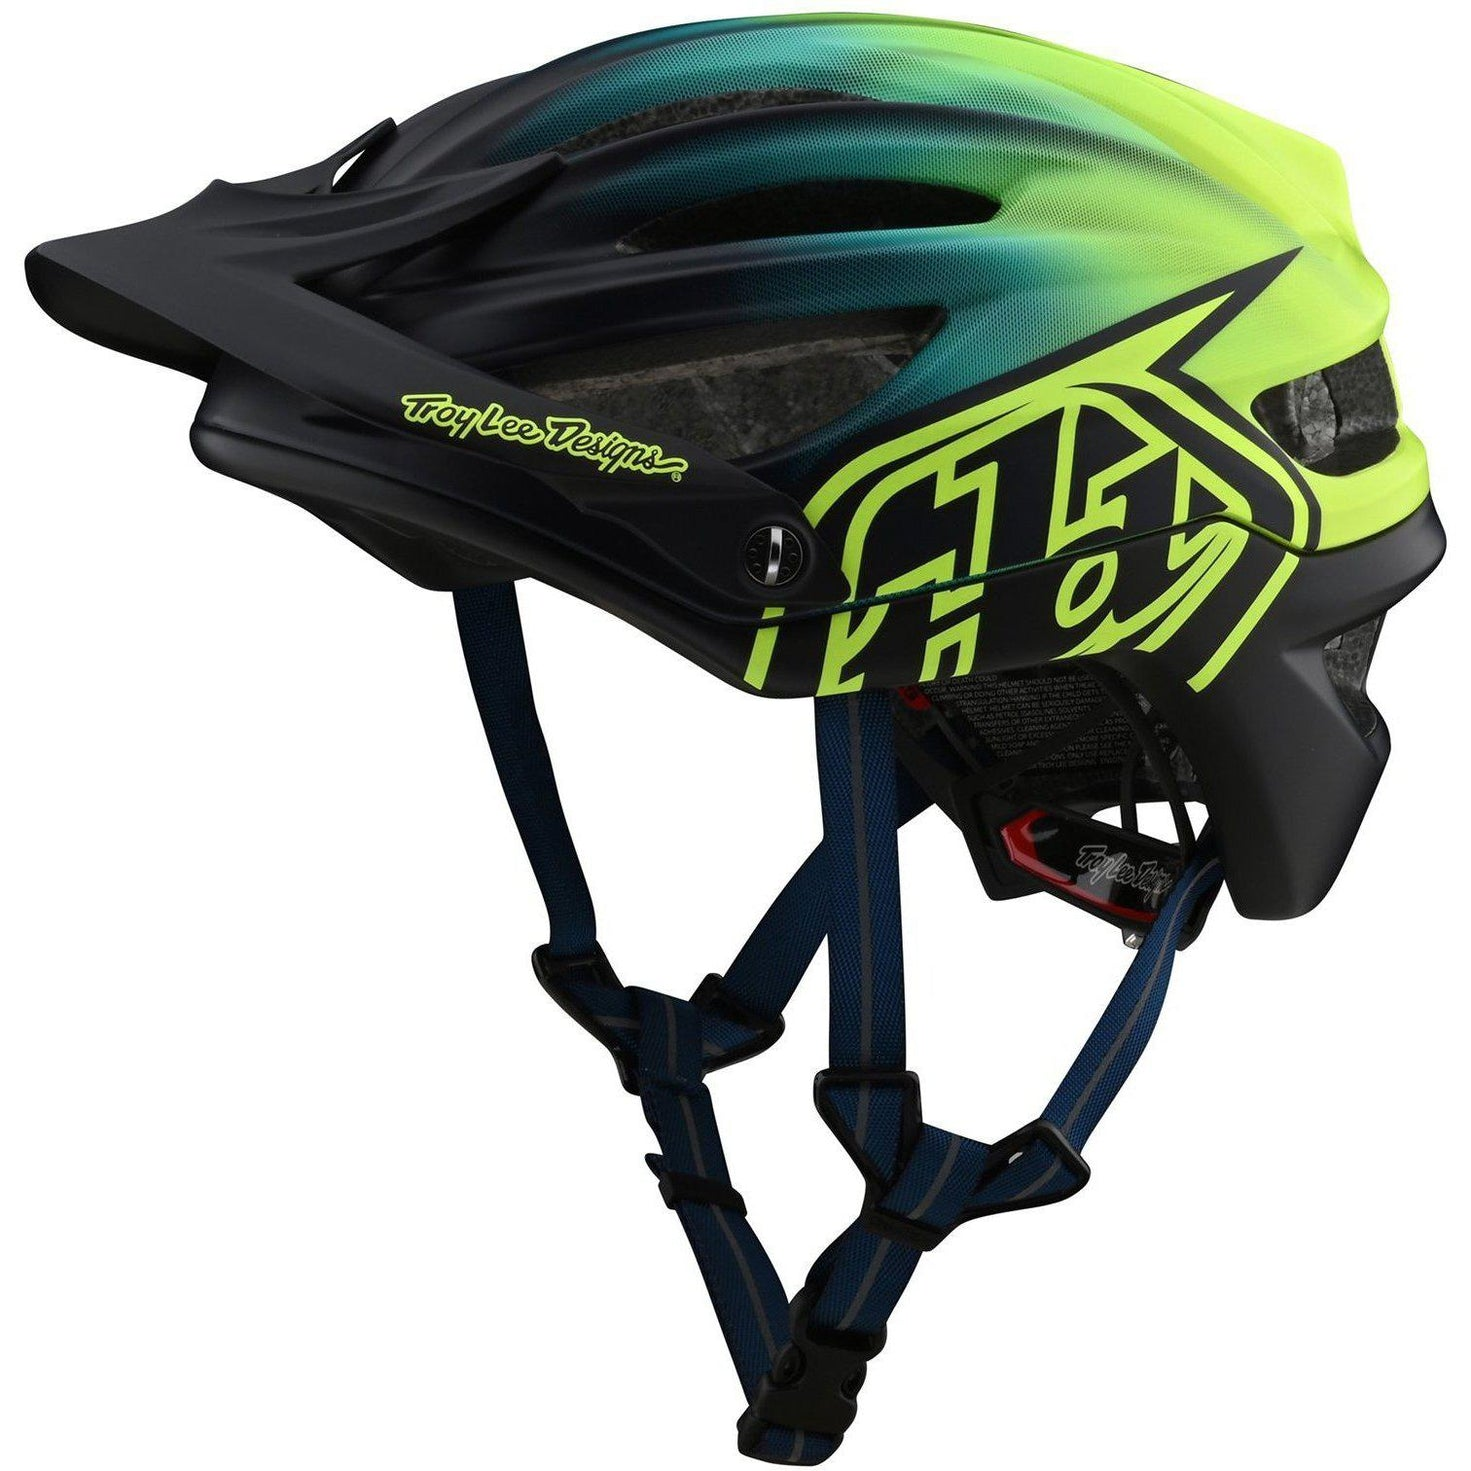 Troy Lee Designs-Troy Lee Designs A2 MIPS Helmet-Stain'd - Navy/Yellow-M/L-TLD191783003-saddleback-elite-performance-cycling